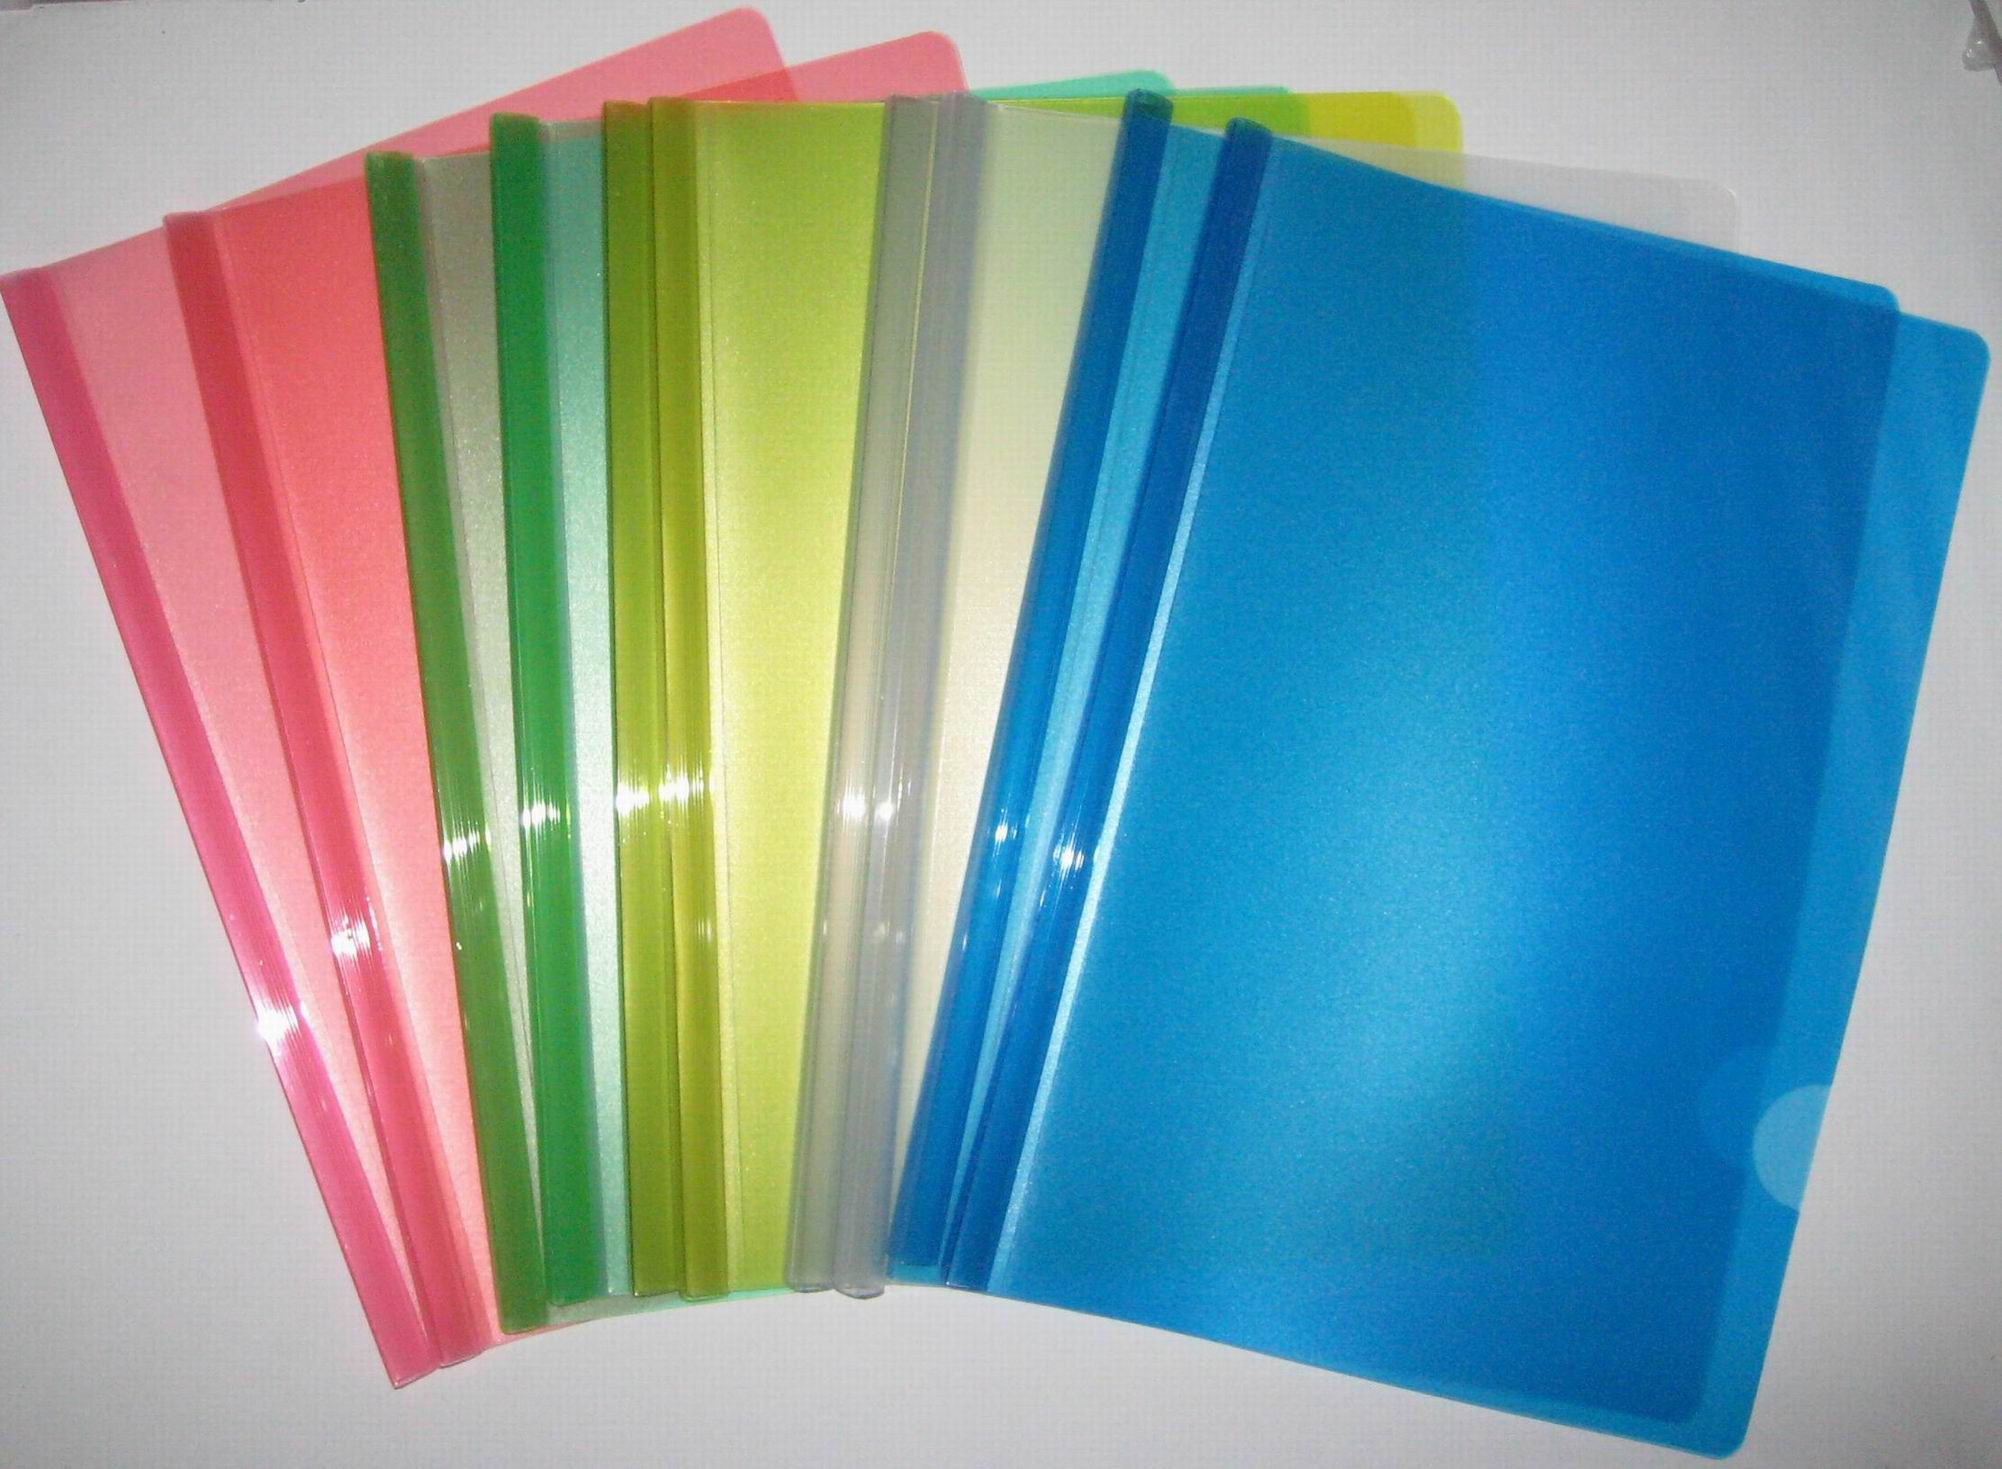 Factory price good quality custom A4 different colour stationery siling bar slide binder folder report cover